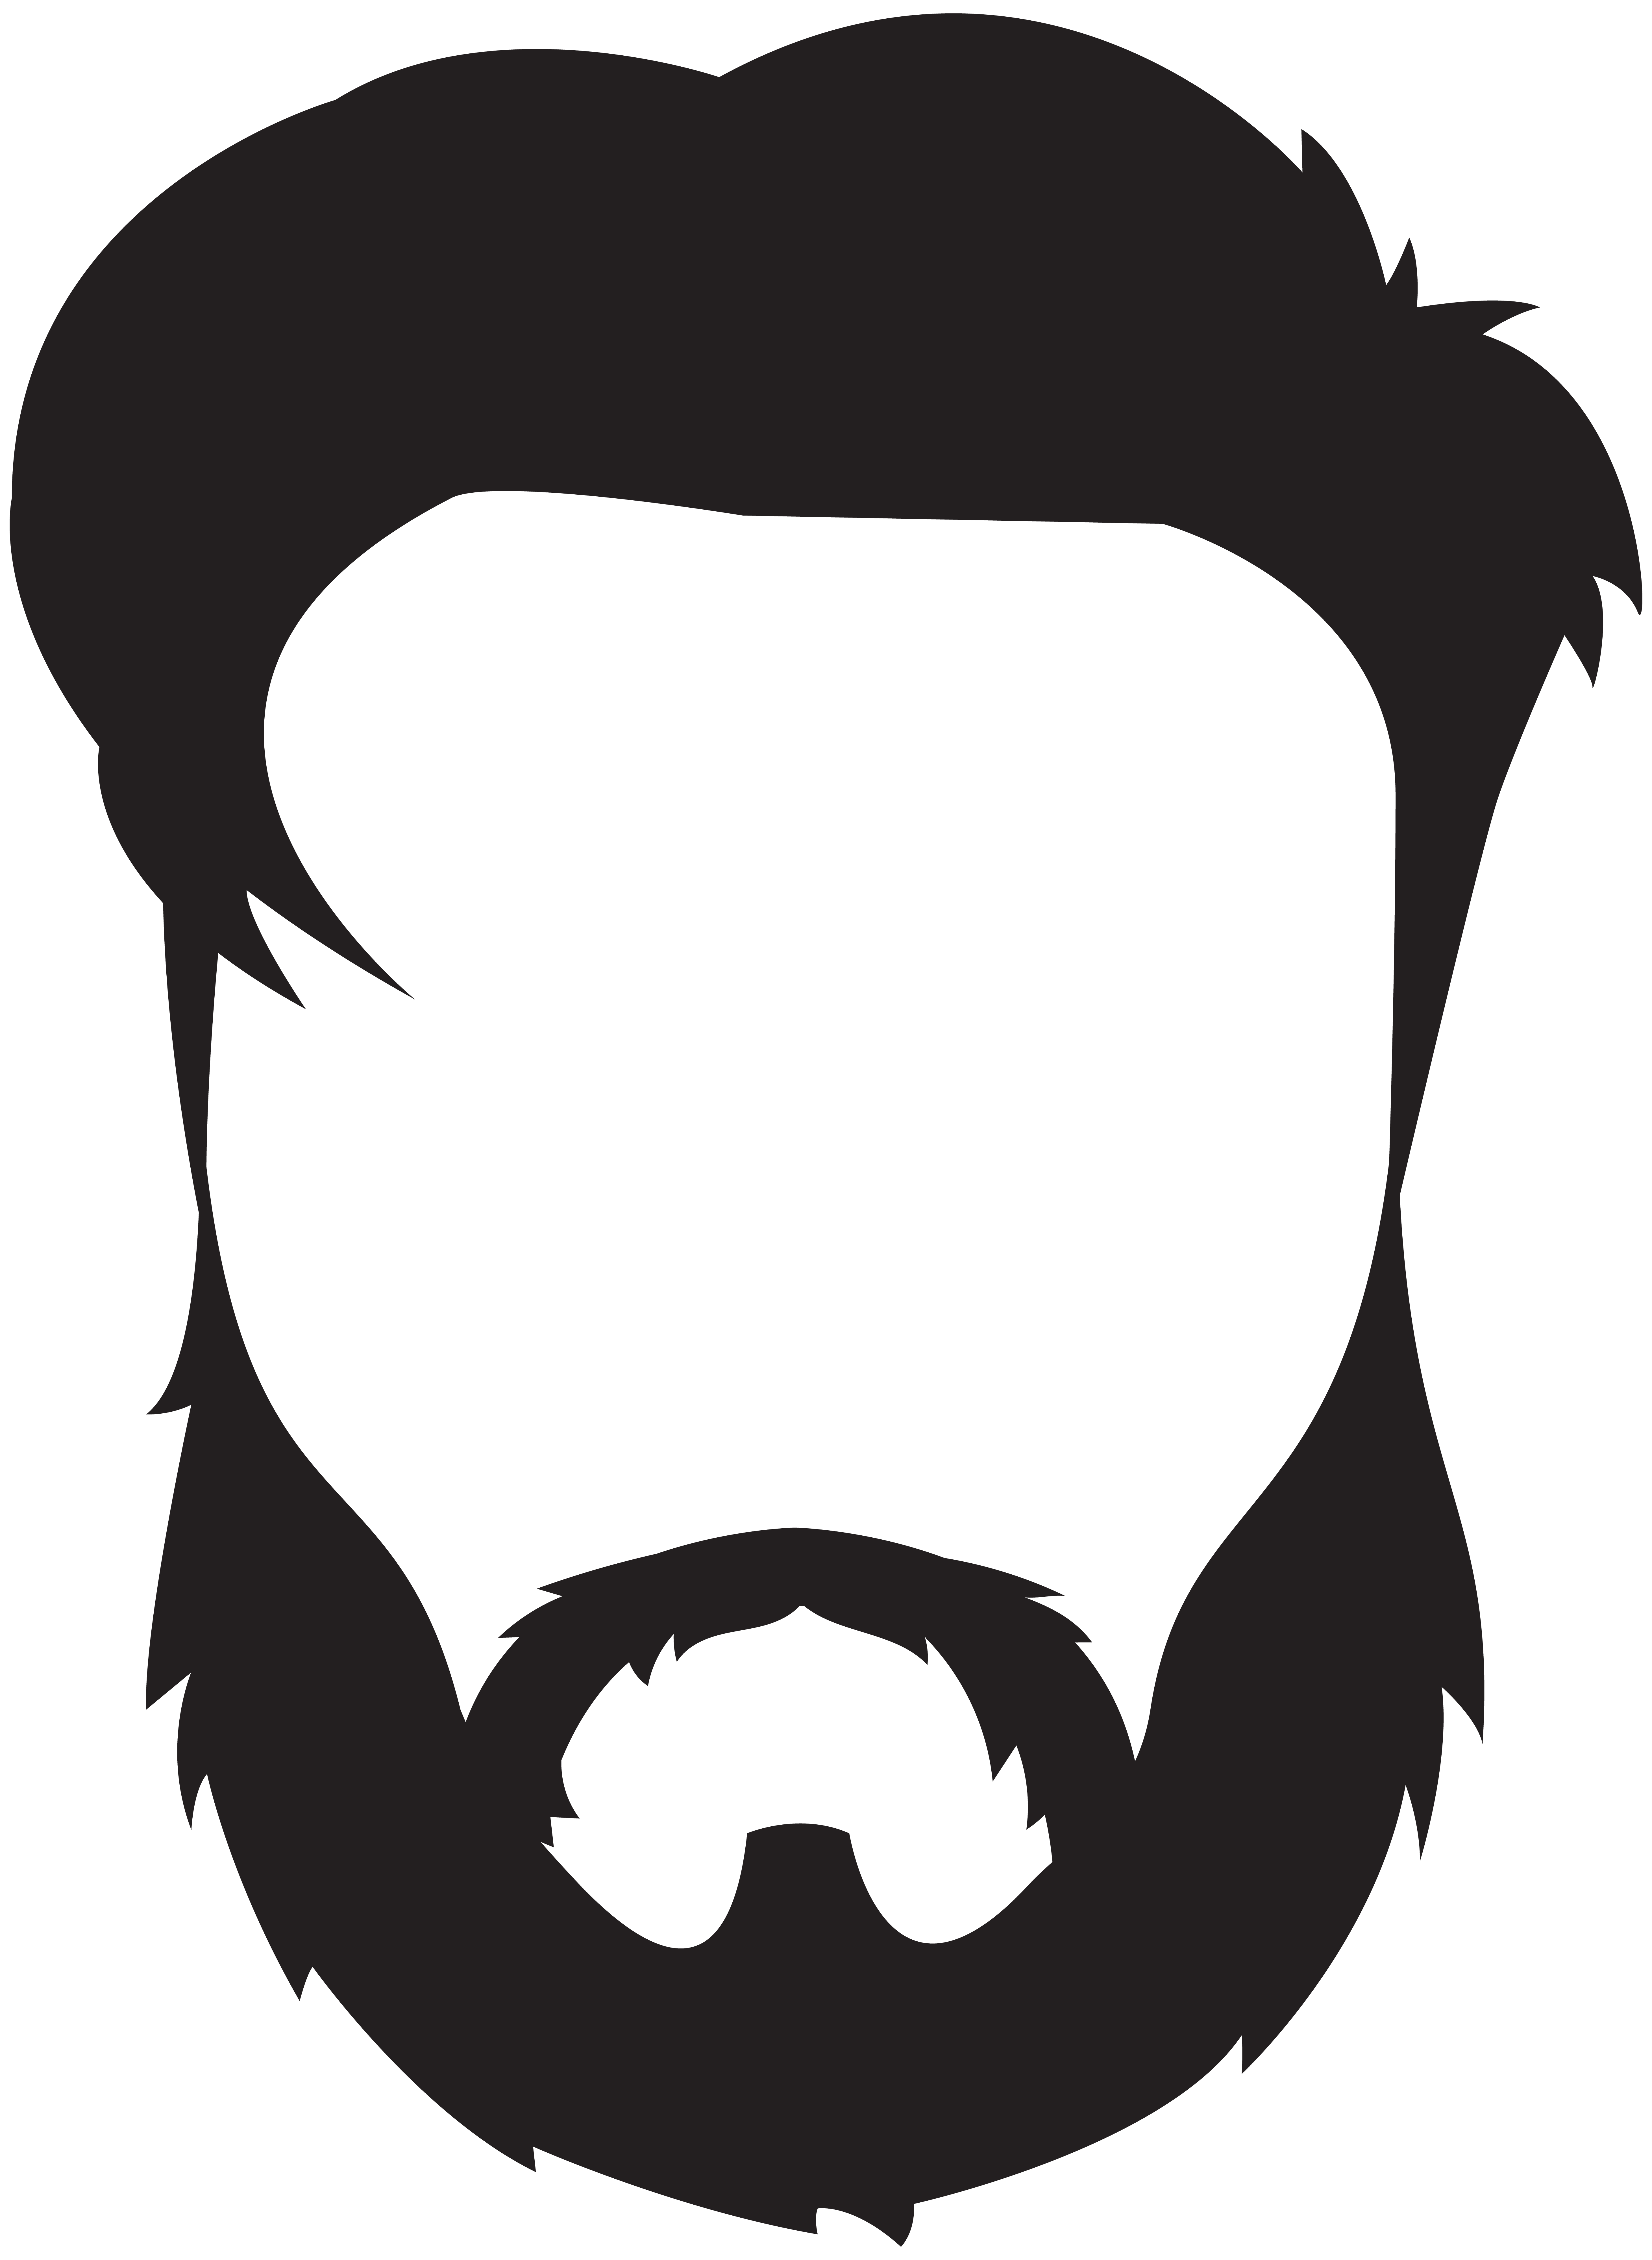 clipart transparent download Beard royalty free clip. Mustache clipart black and white